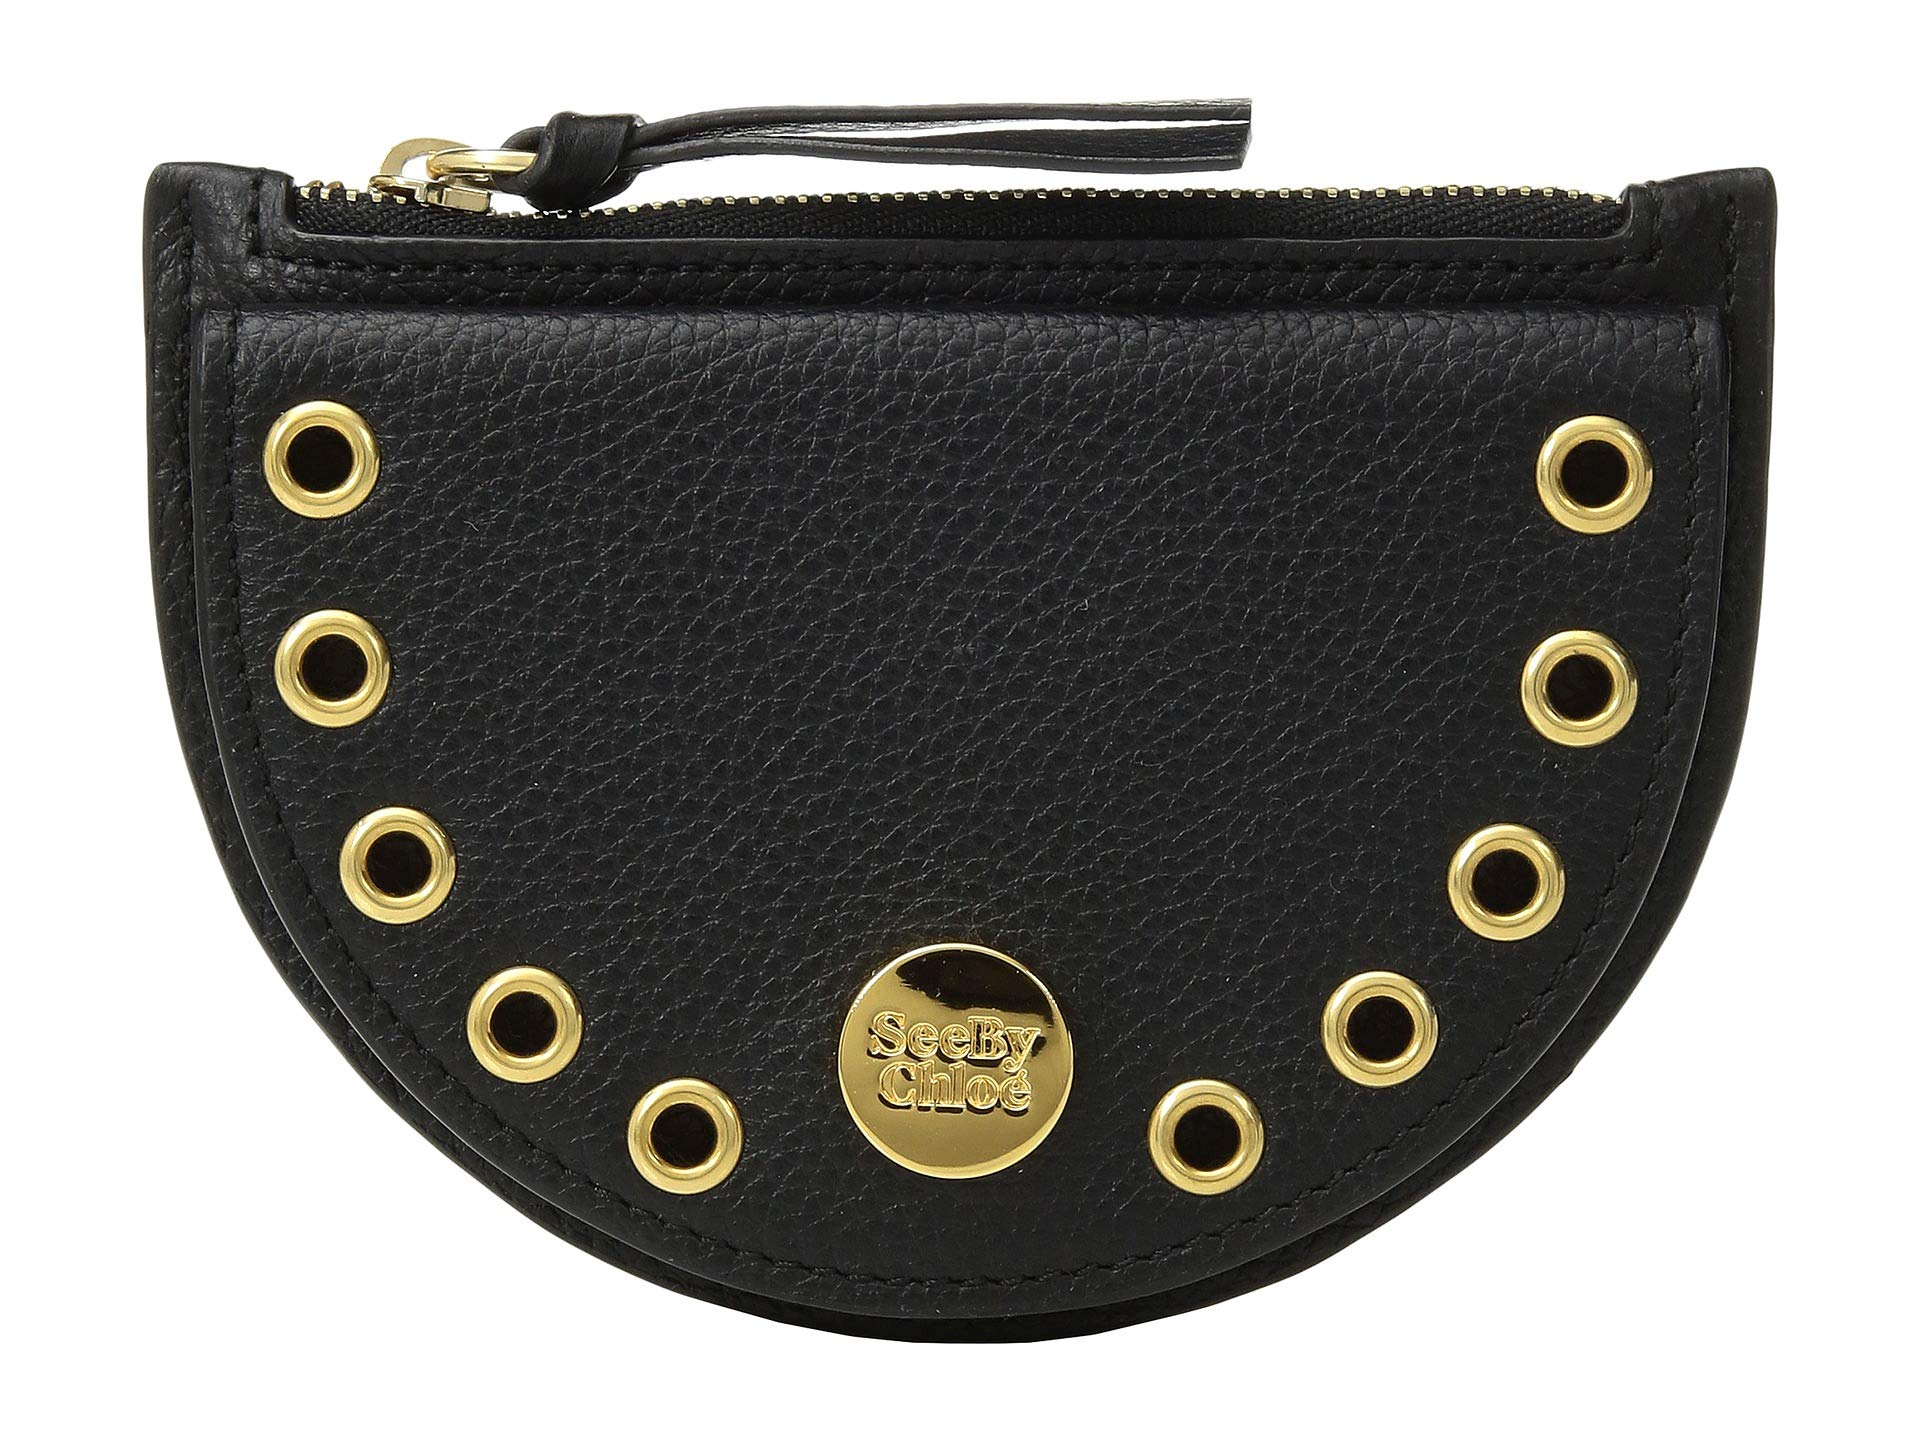 Purse Chloe Coin By See Mini Black Kriss nRqI5Xn1pw